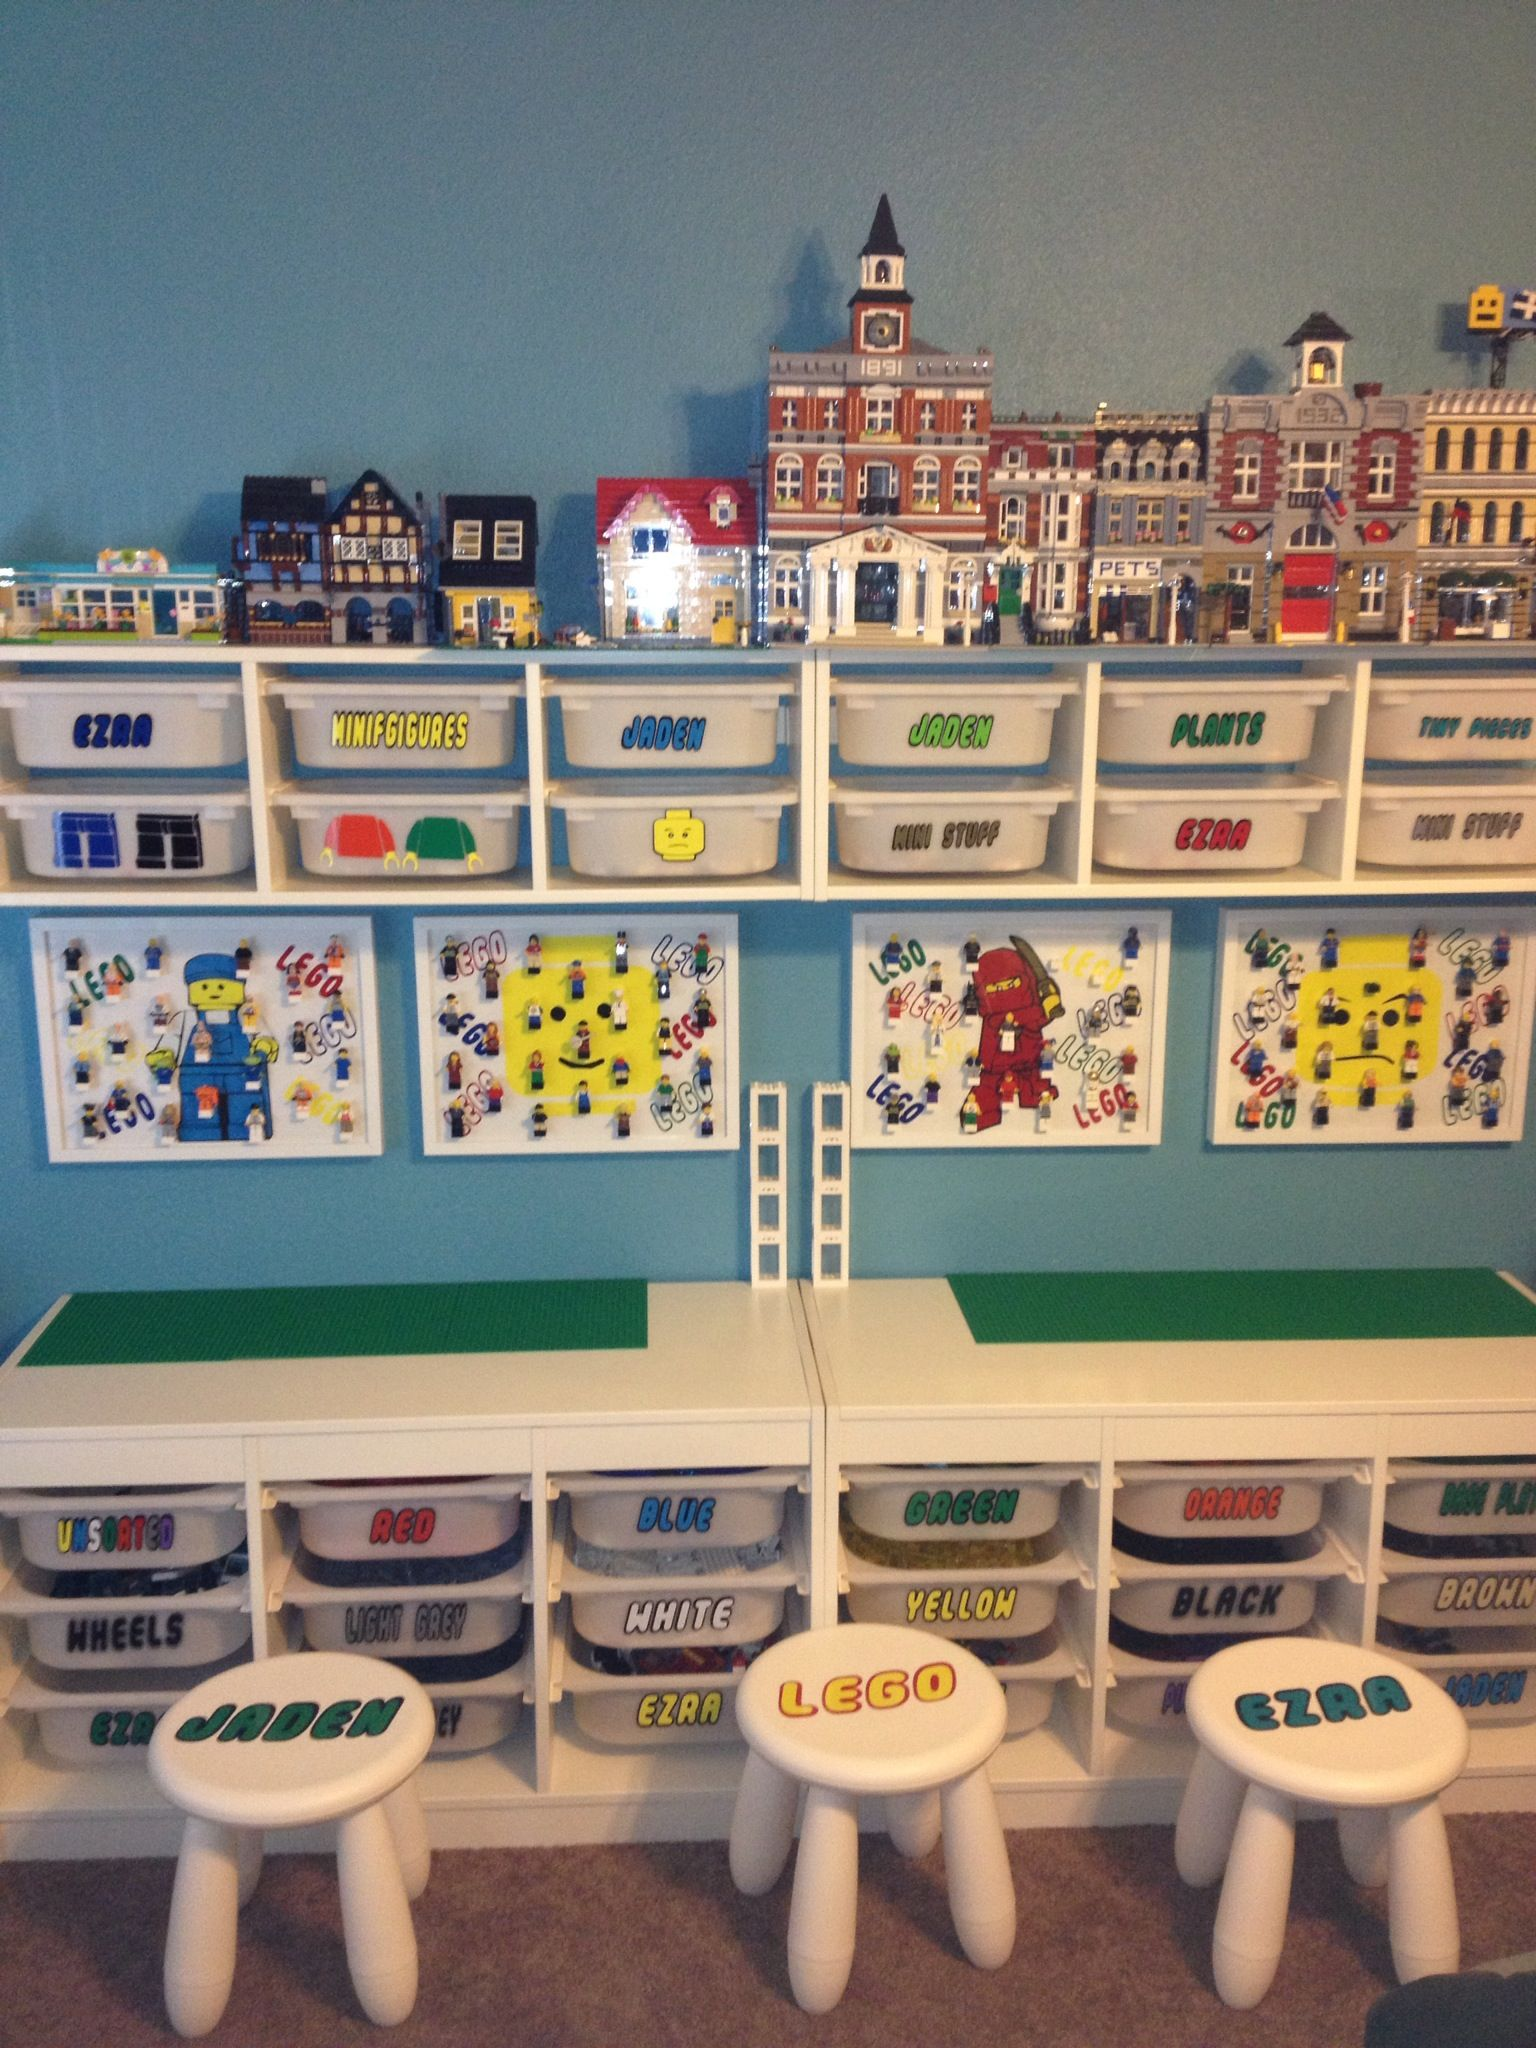 Delightful Lego Storage Cabinets From Ikea I Have Never Been An Ikea Fan, But This May